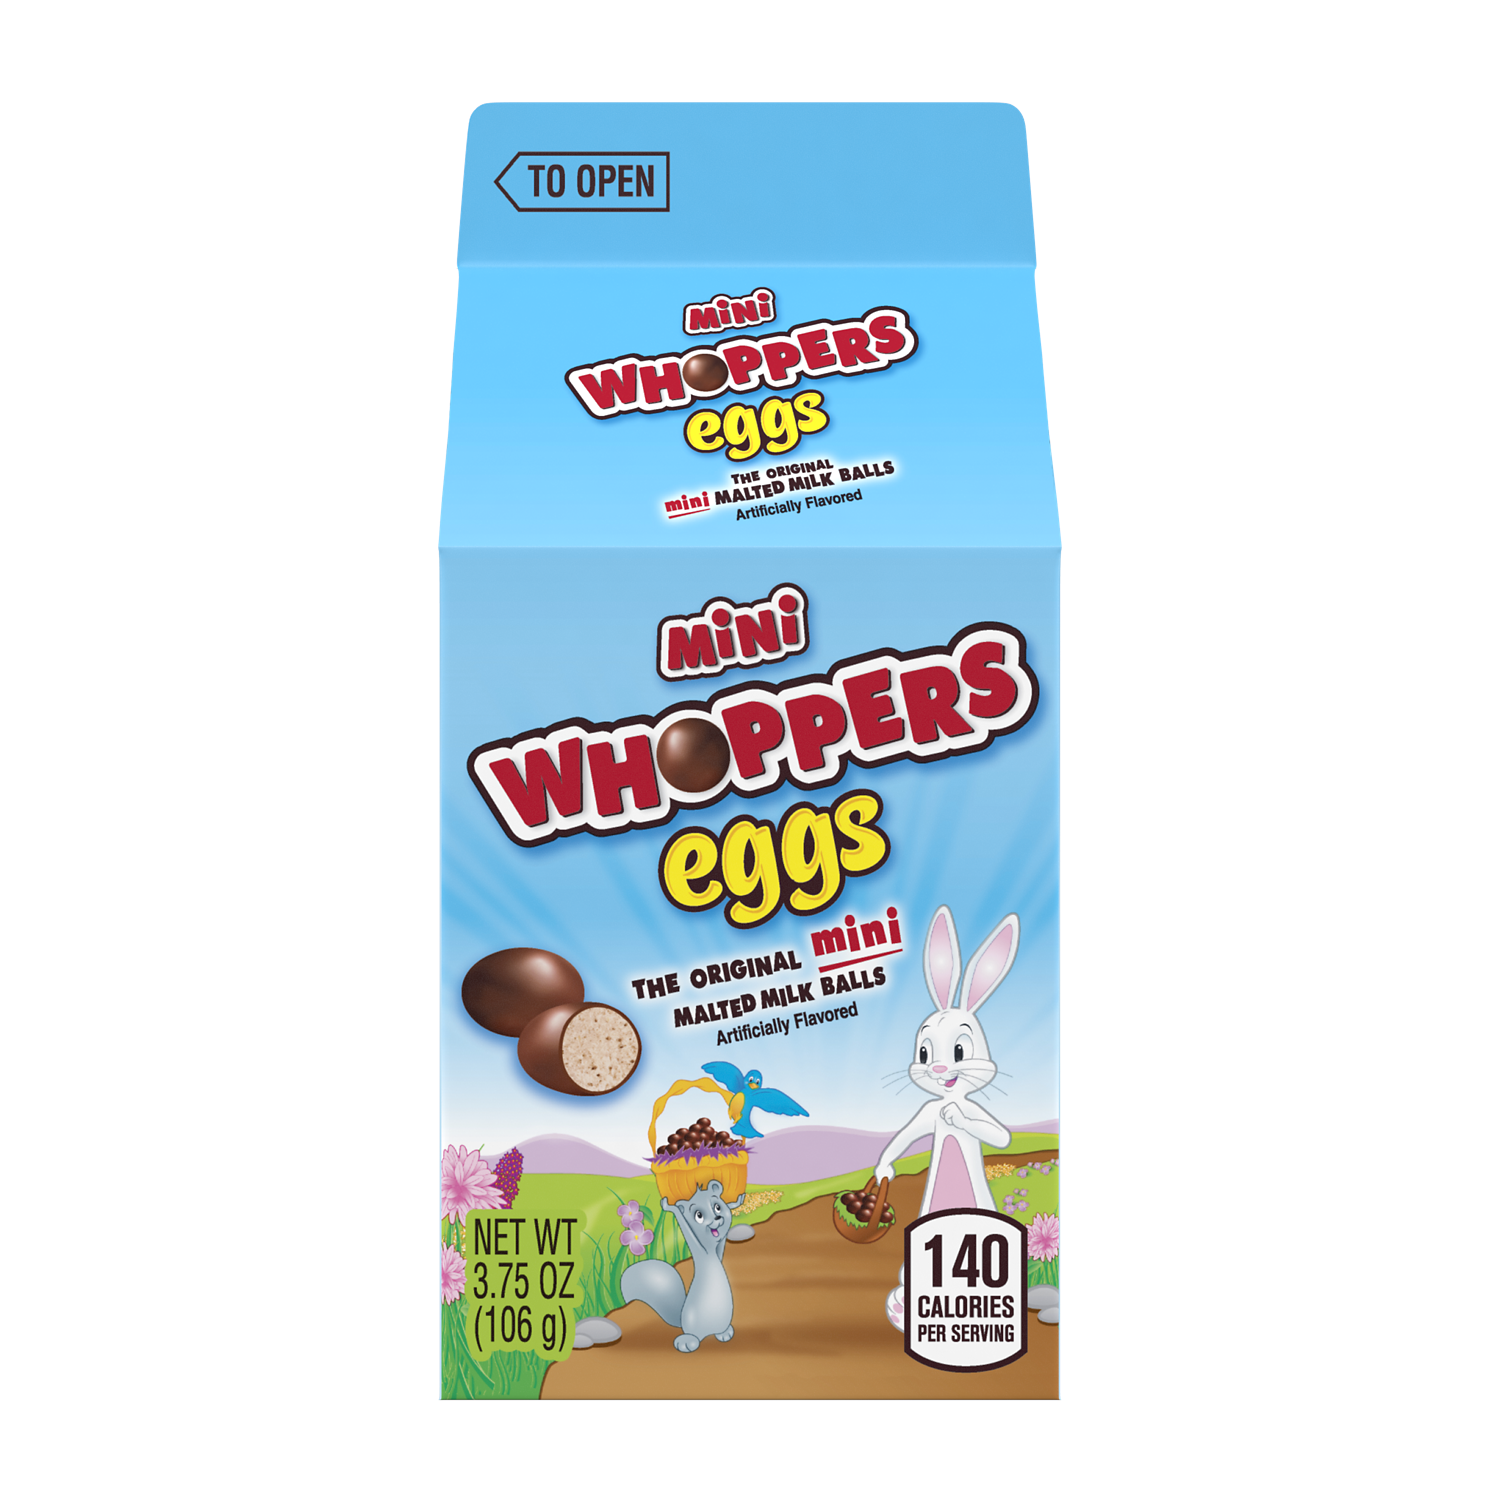 WHOPPERS Mini Malted Milk Balls, 3.75 oz carton - Front of Package